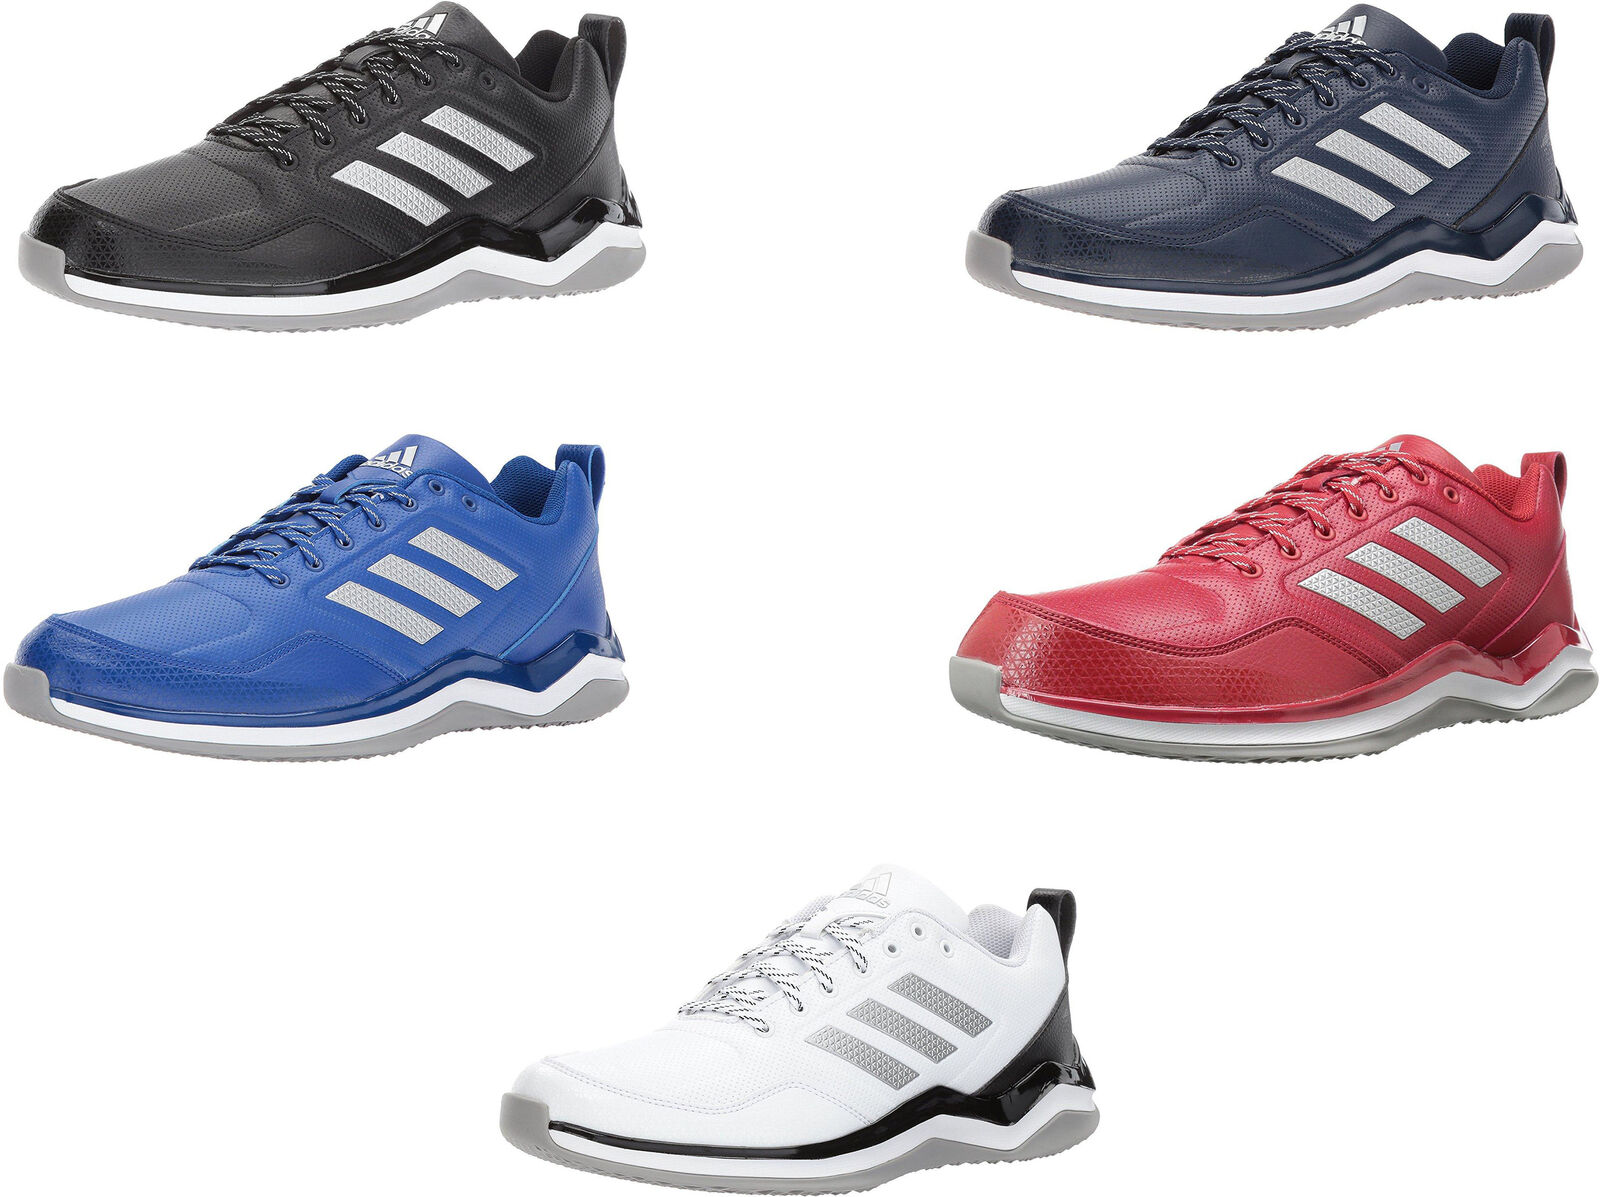 lowest price a0800 0f915 adidas Men s Speed Trainer 3 Shoes, 5 Colors